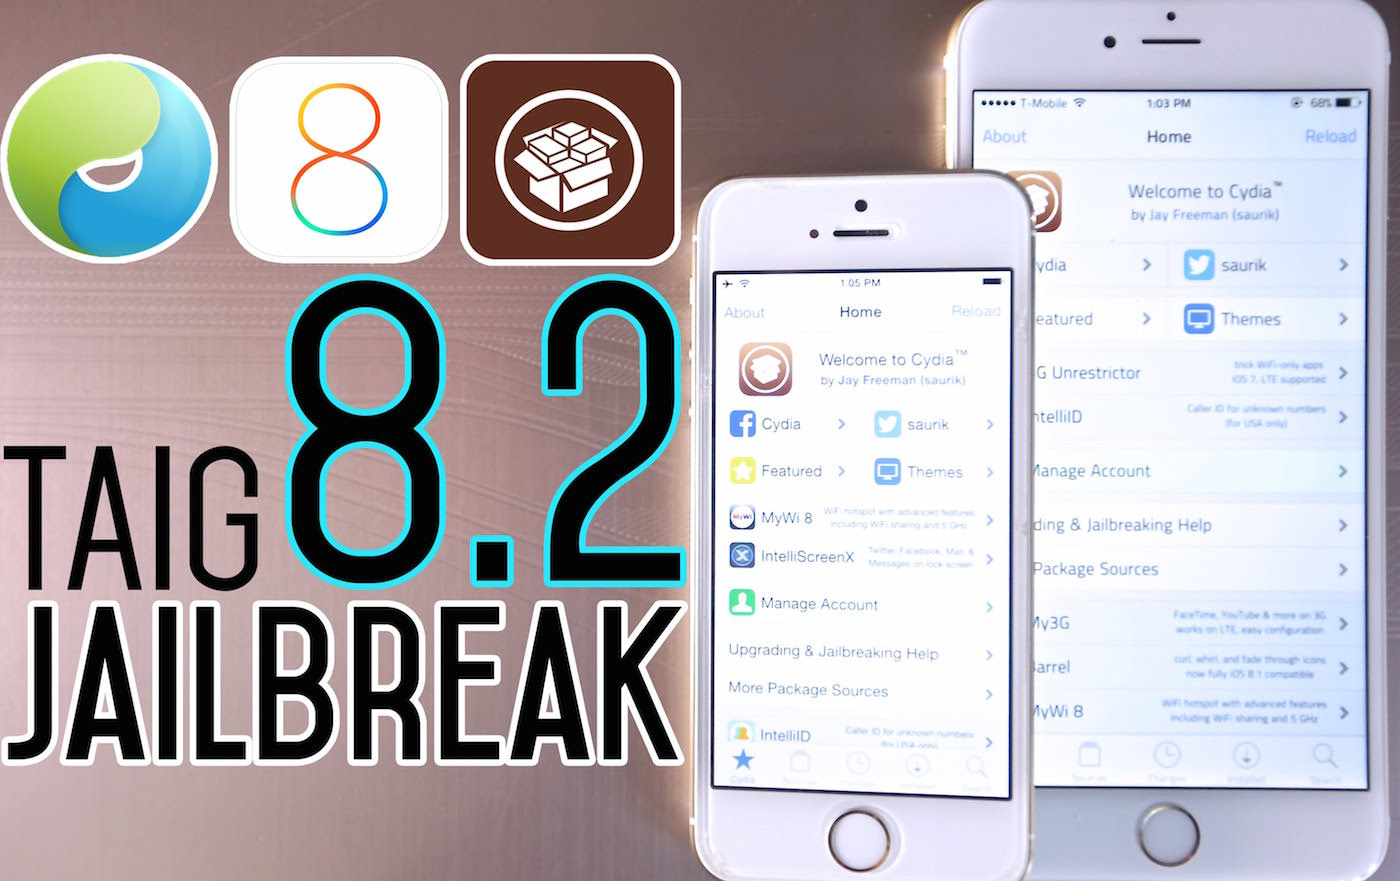 TaigTeam Jailbreak Jail iOS 8.2 8.3 iOS 9 Apple Iphone ipad gade